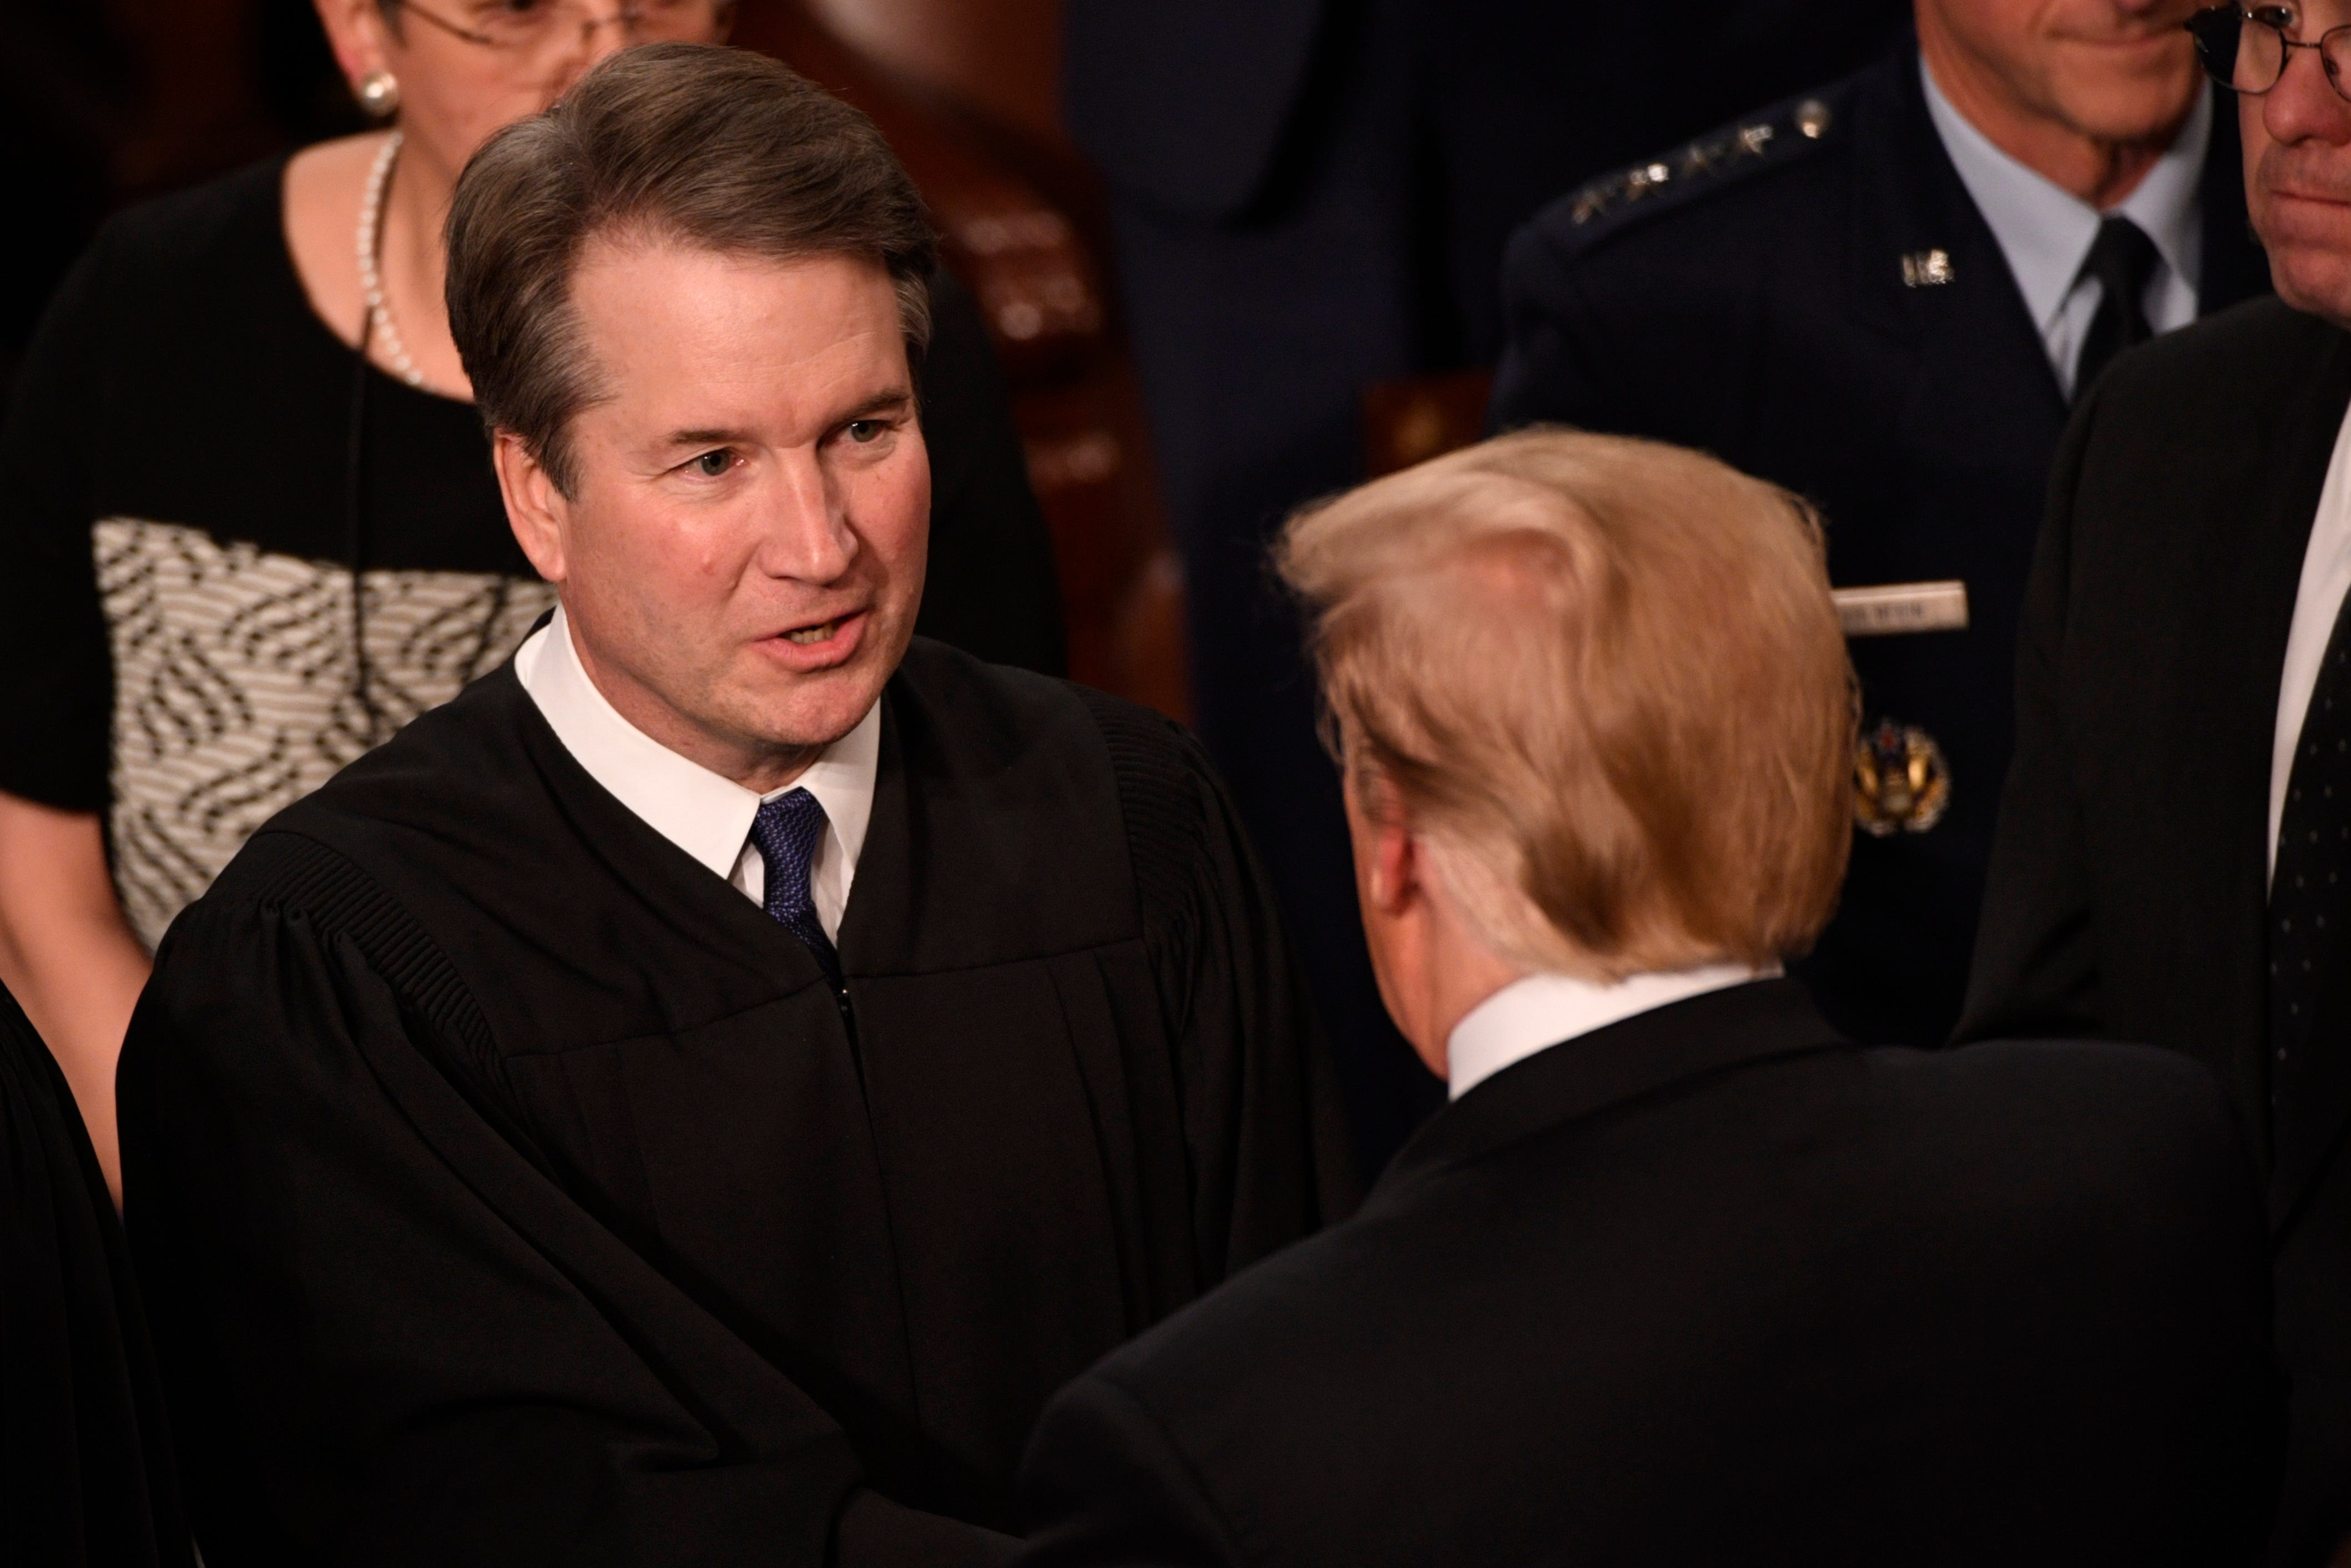 Supreme Court Associate Justice Brett Kavanaugh greets President Donald Trump before the State of the Union address in the House chamber of the United States Capitol in February 2019.